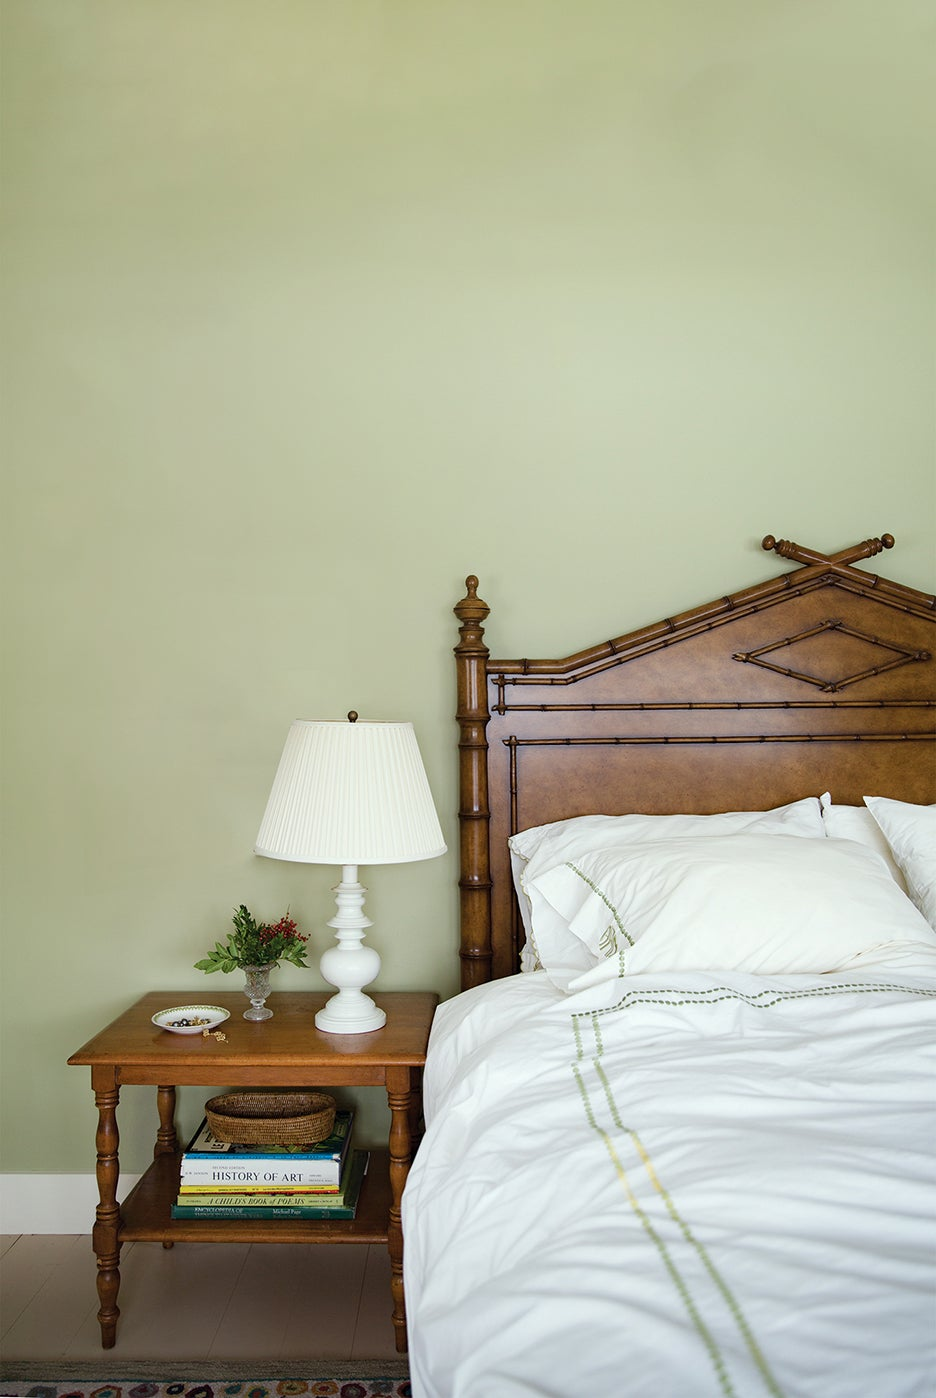 Sage green wall in front of bed